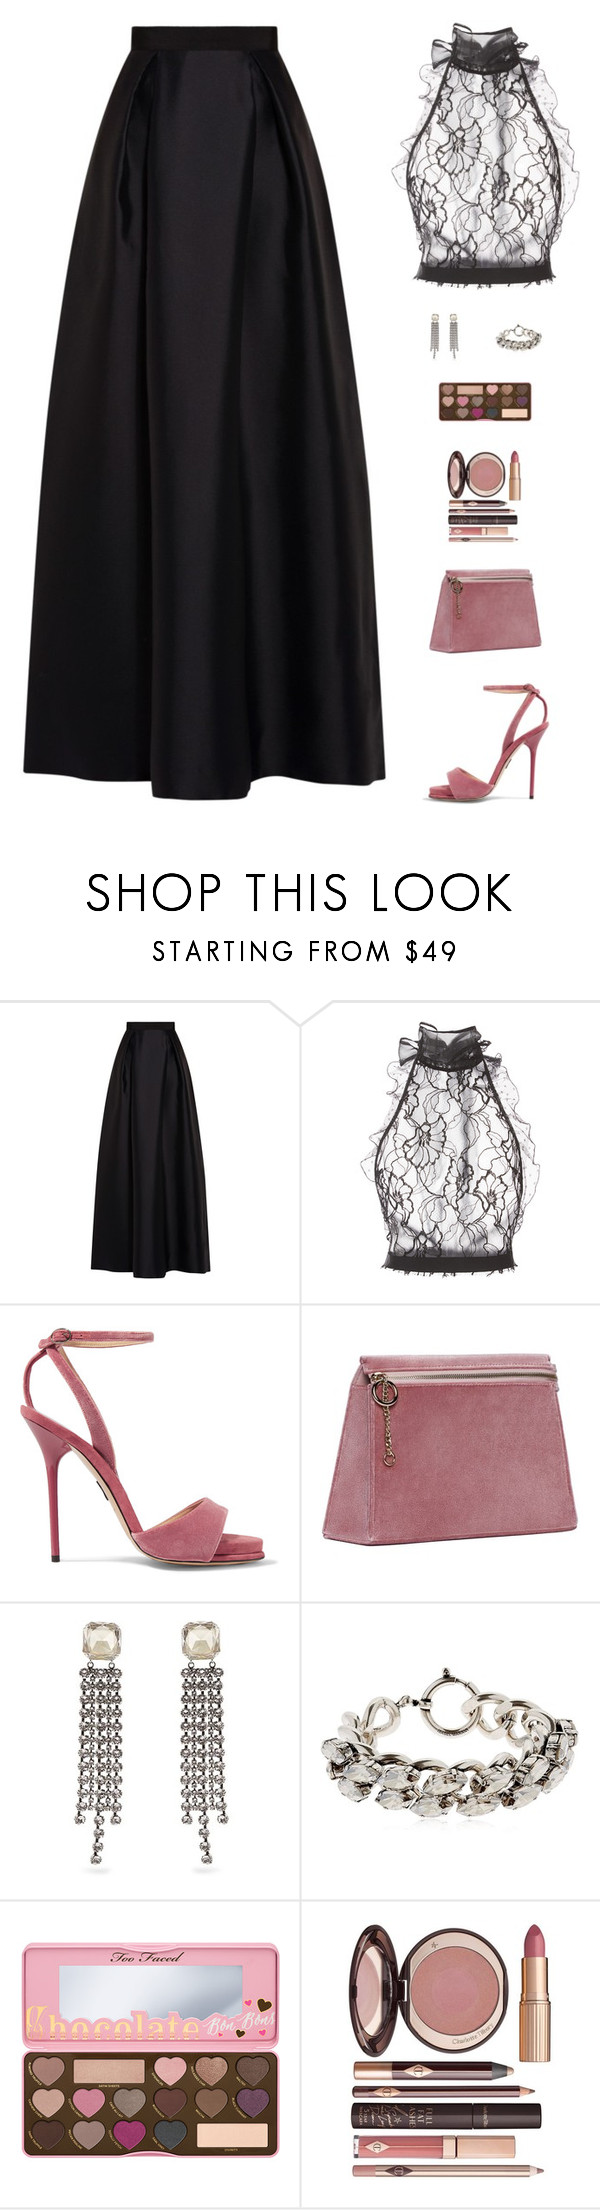 """""""Untitled 5202"""" by mdmsb on Polyvore featuring Alberta"""